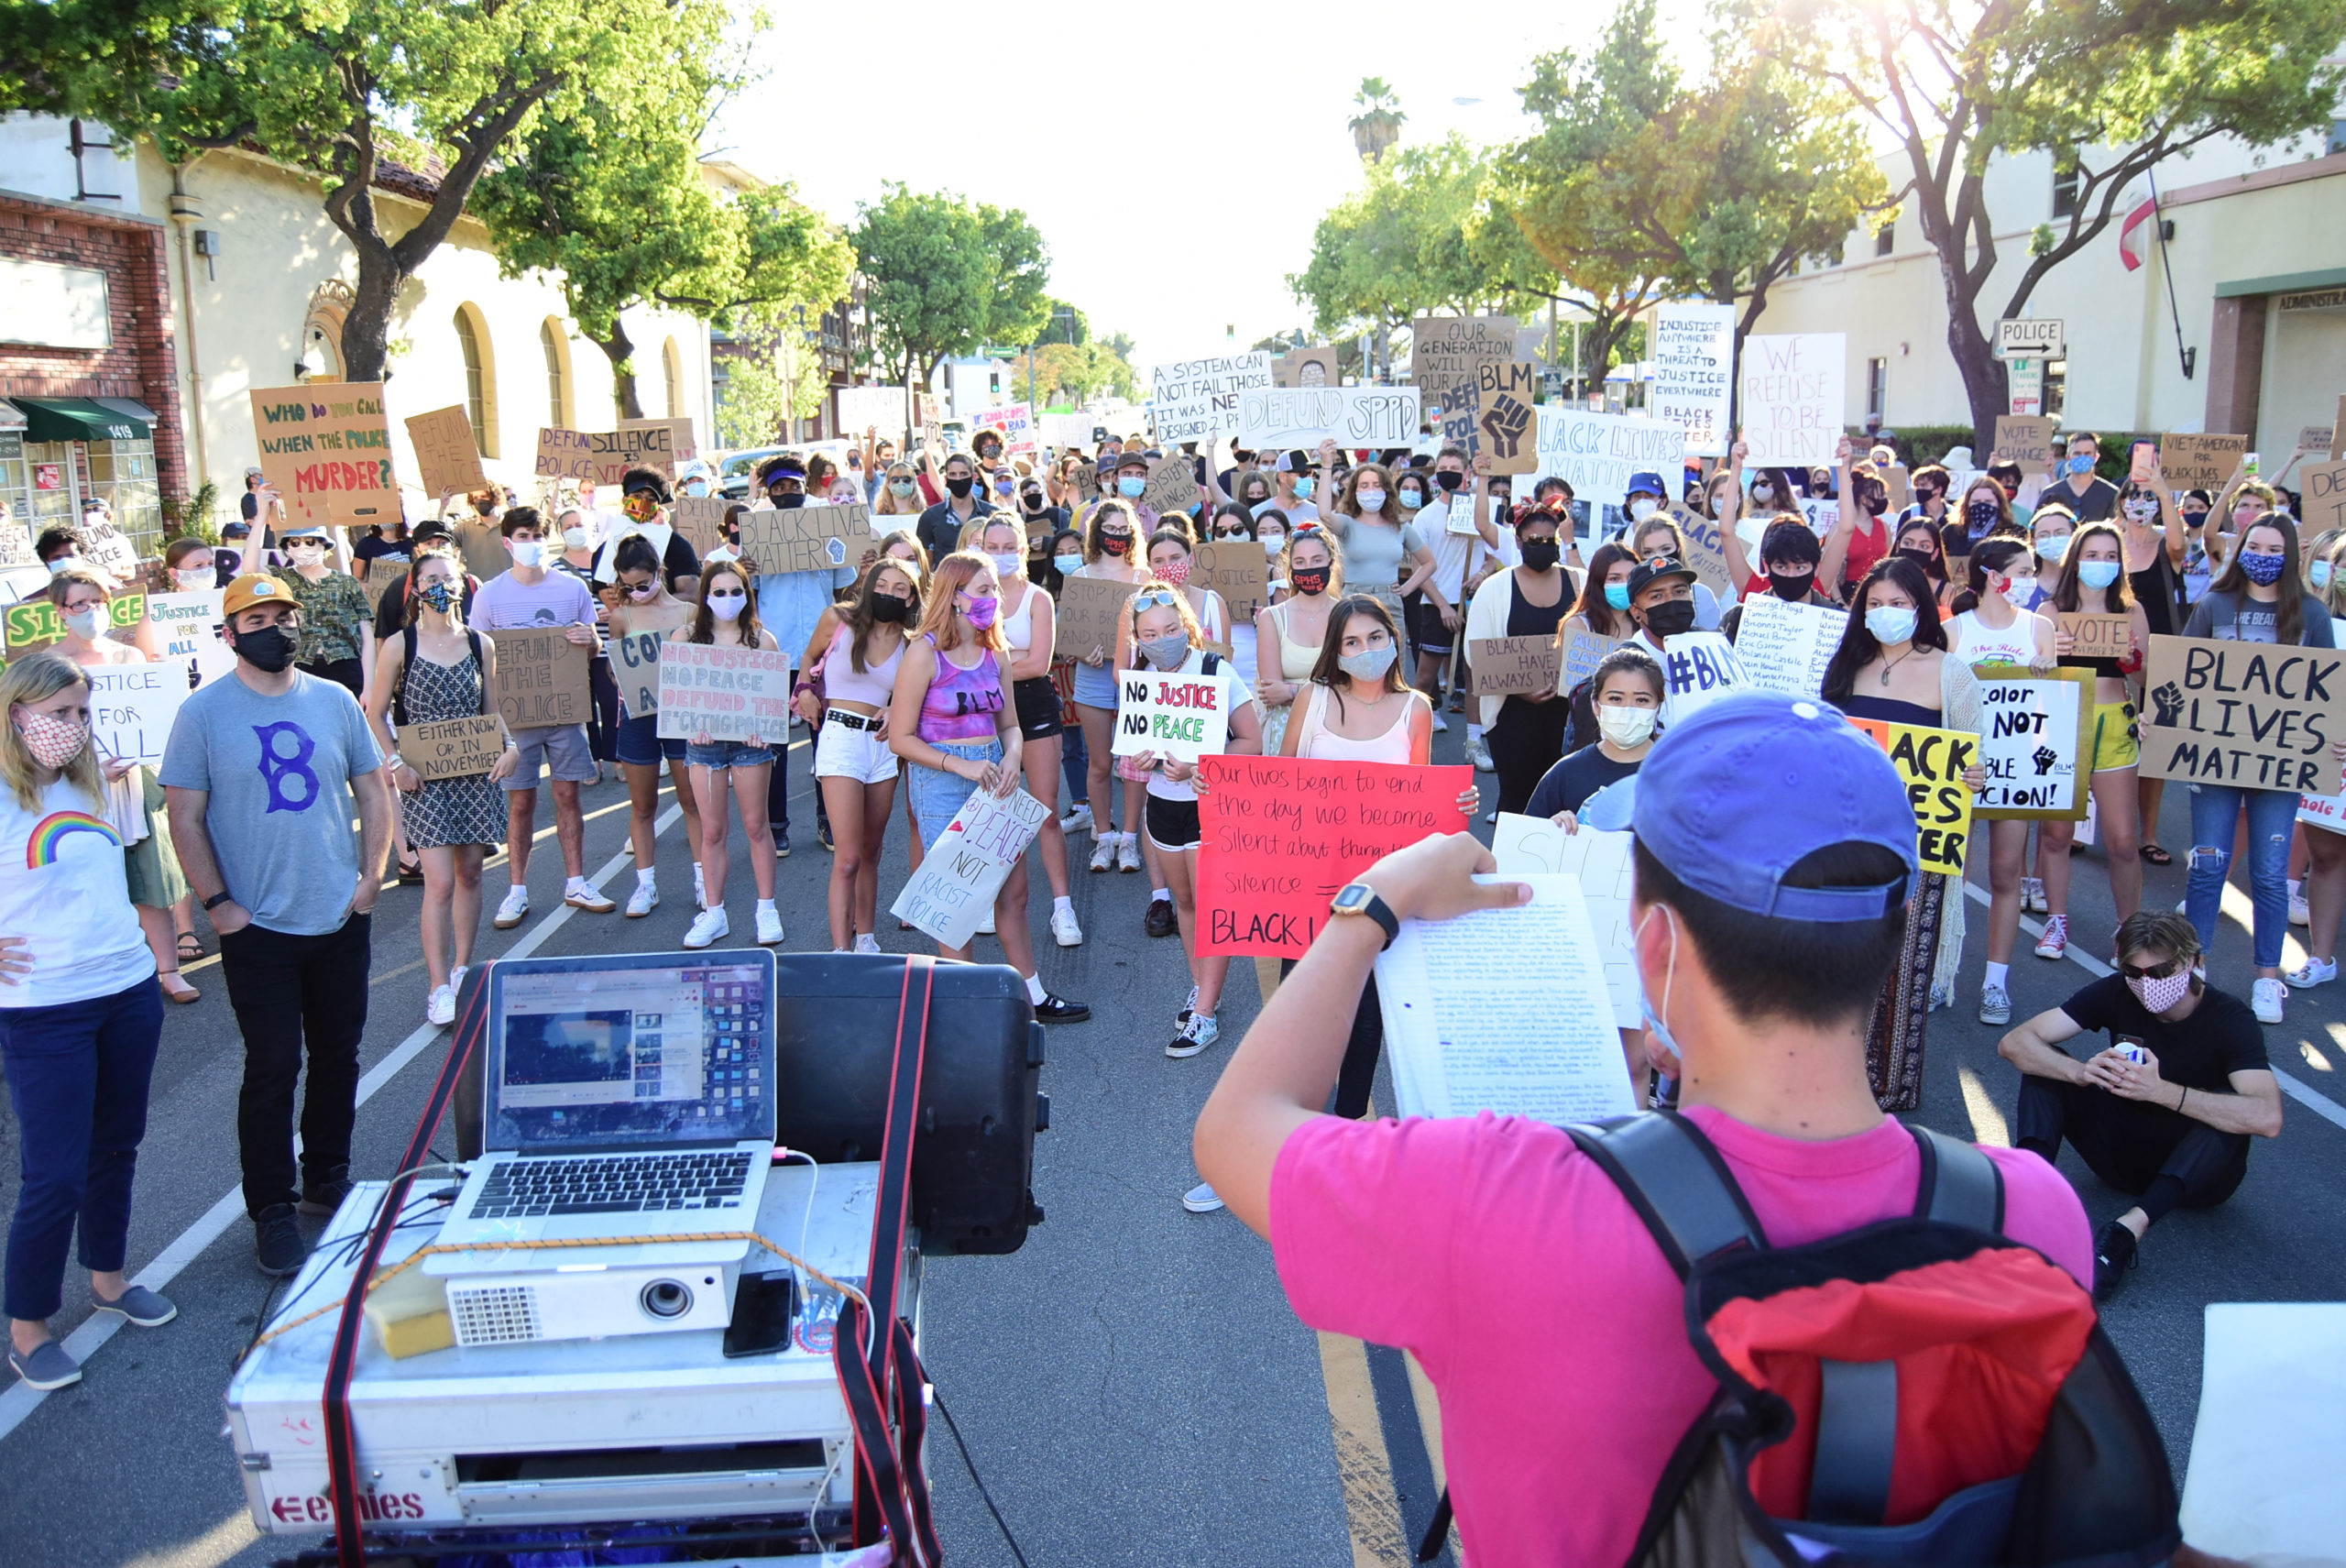 south-pasadena-news-06-12-2020-blm-black-lives-matter-sp-youth-for-police-reform-protest-city-hall-mission-st-06